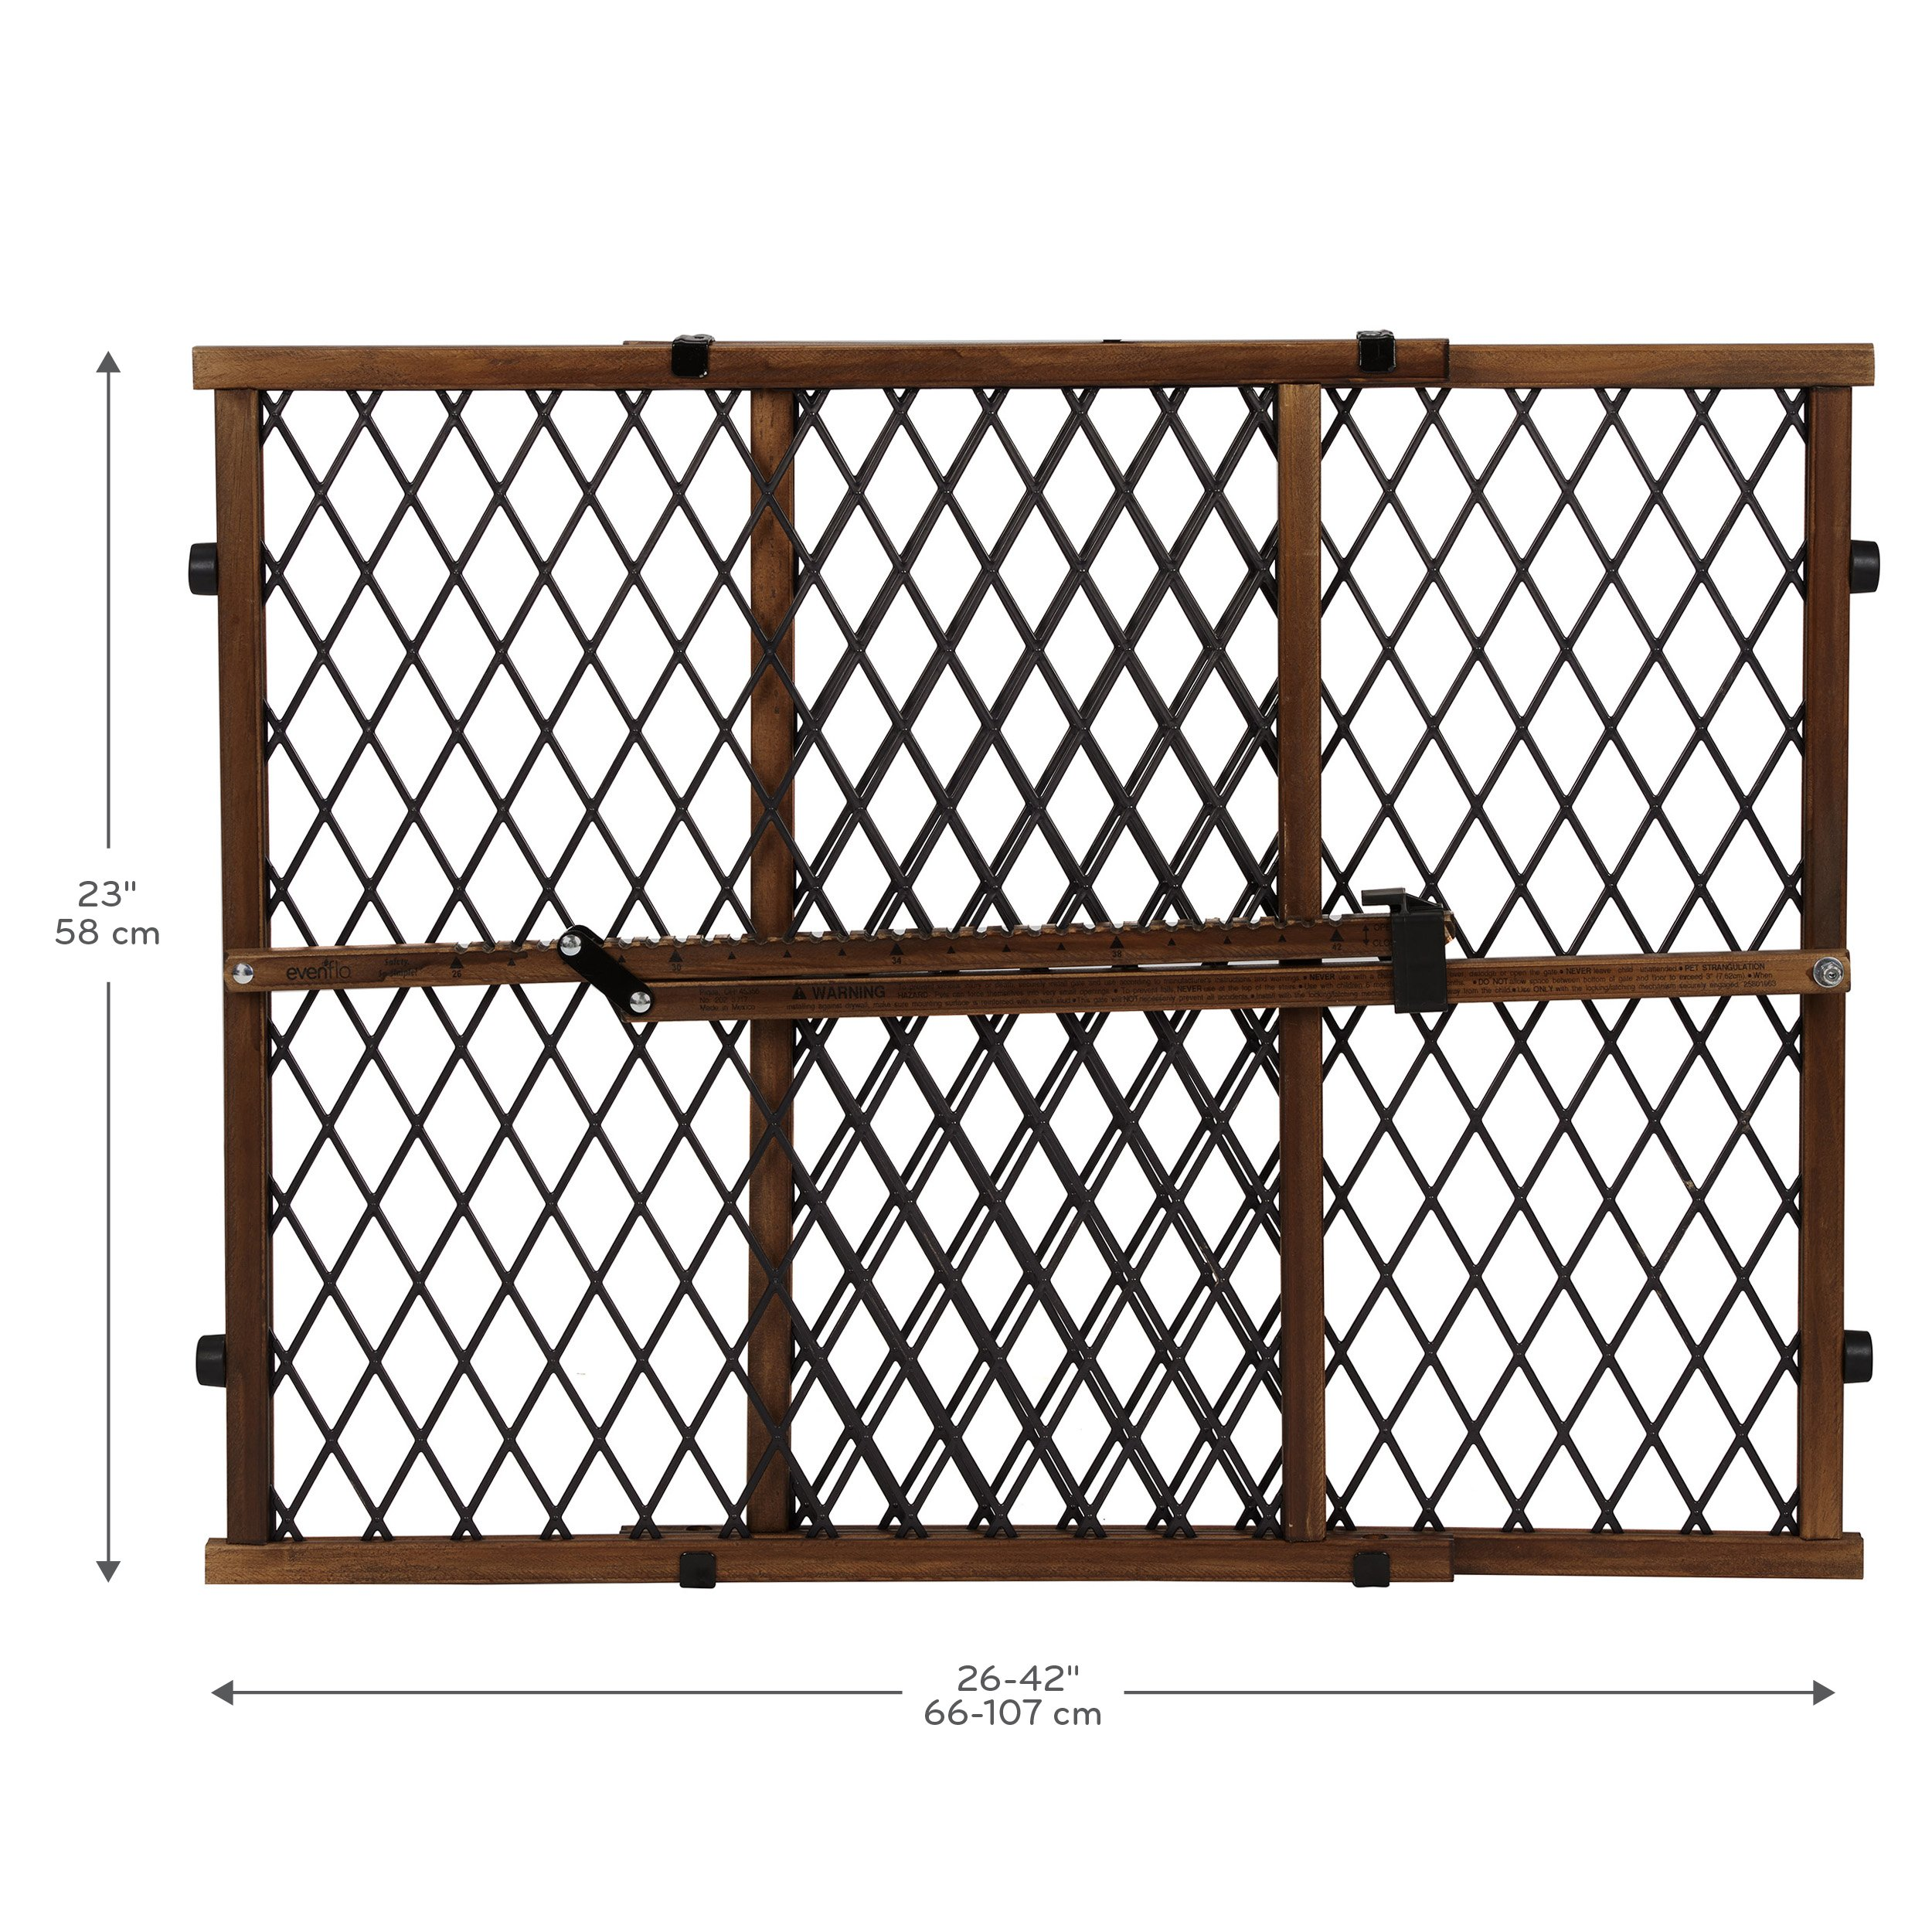 Evenflo Position and Lock Farmhouse Pressure Mount Gate, Dark Wood by Evenflo (Image #3)